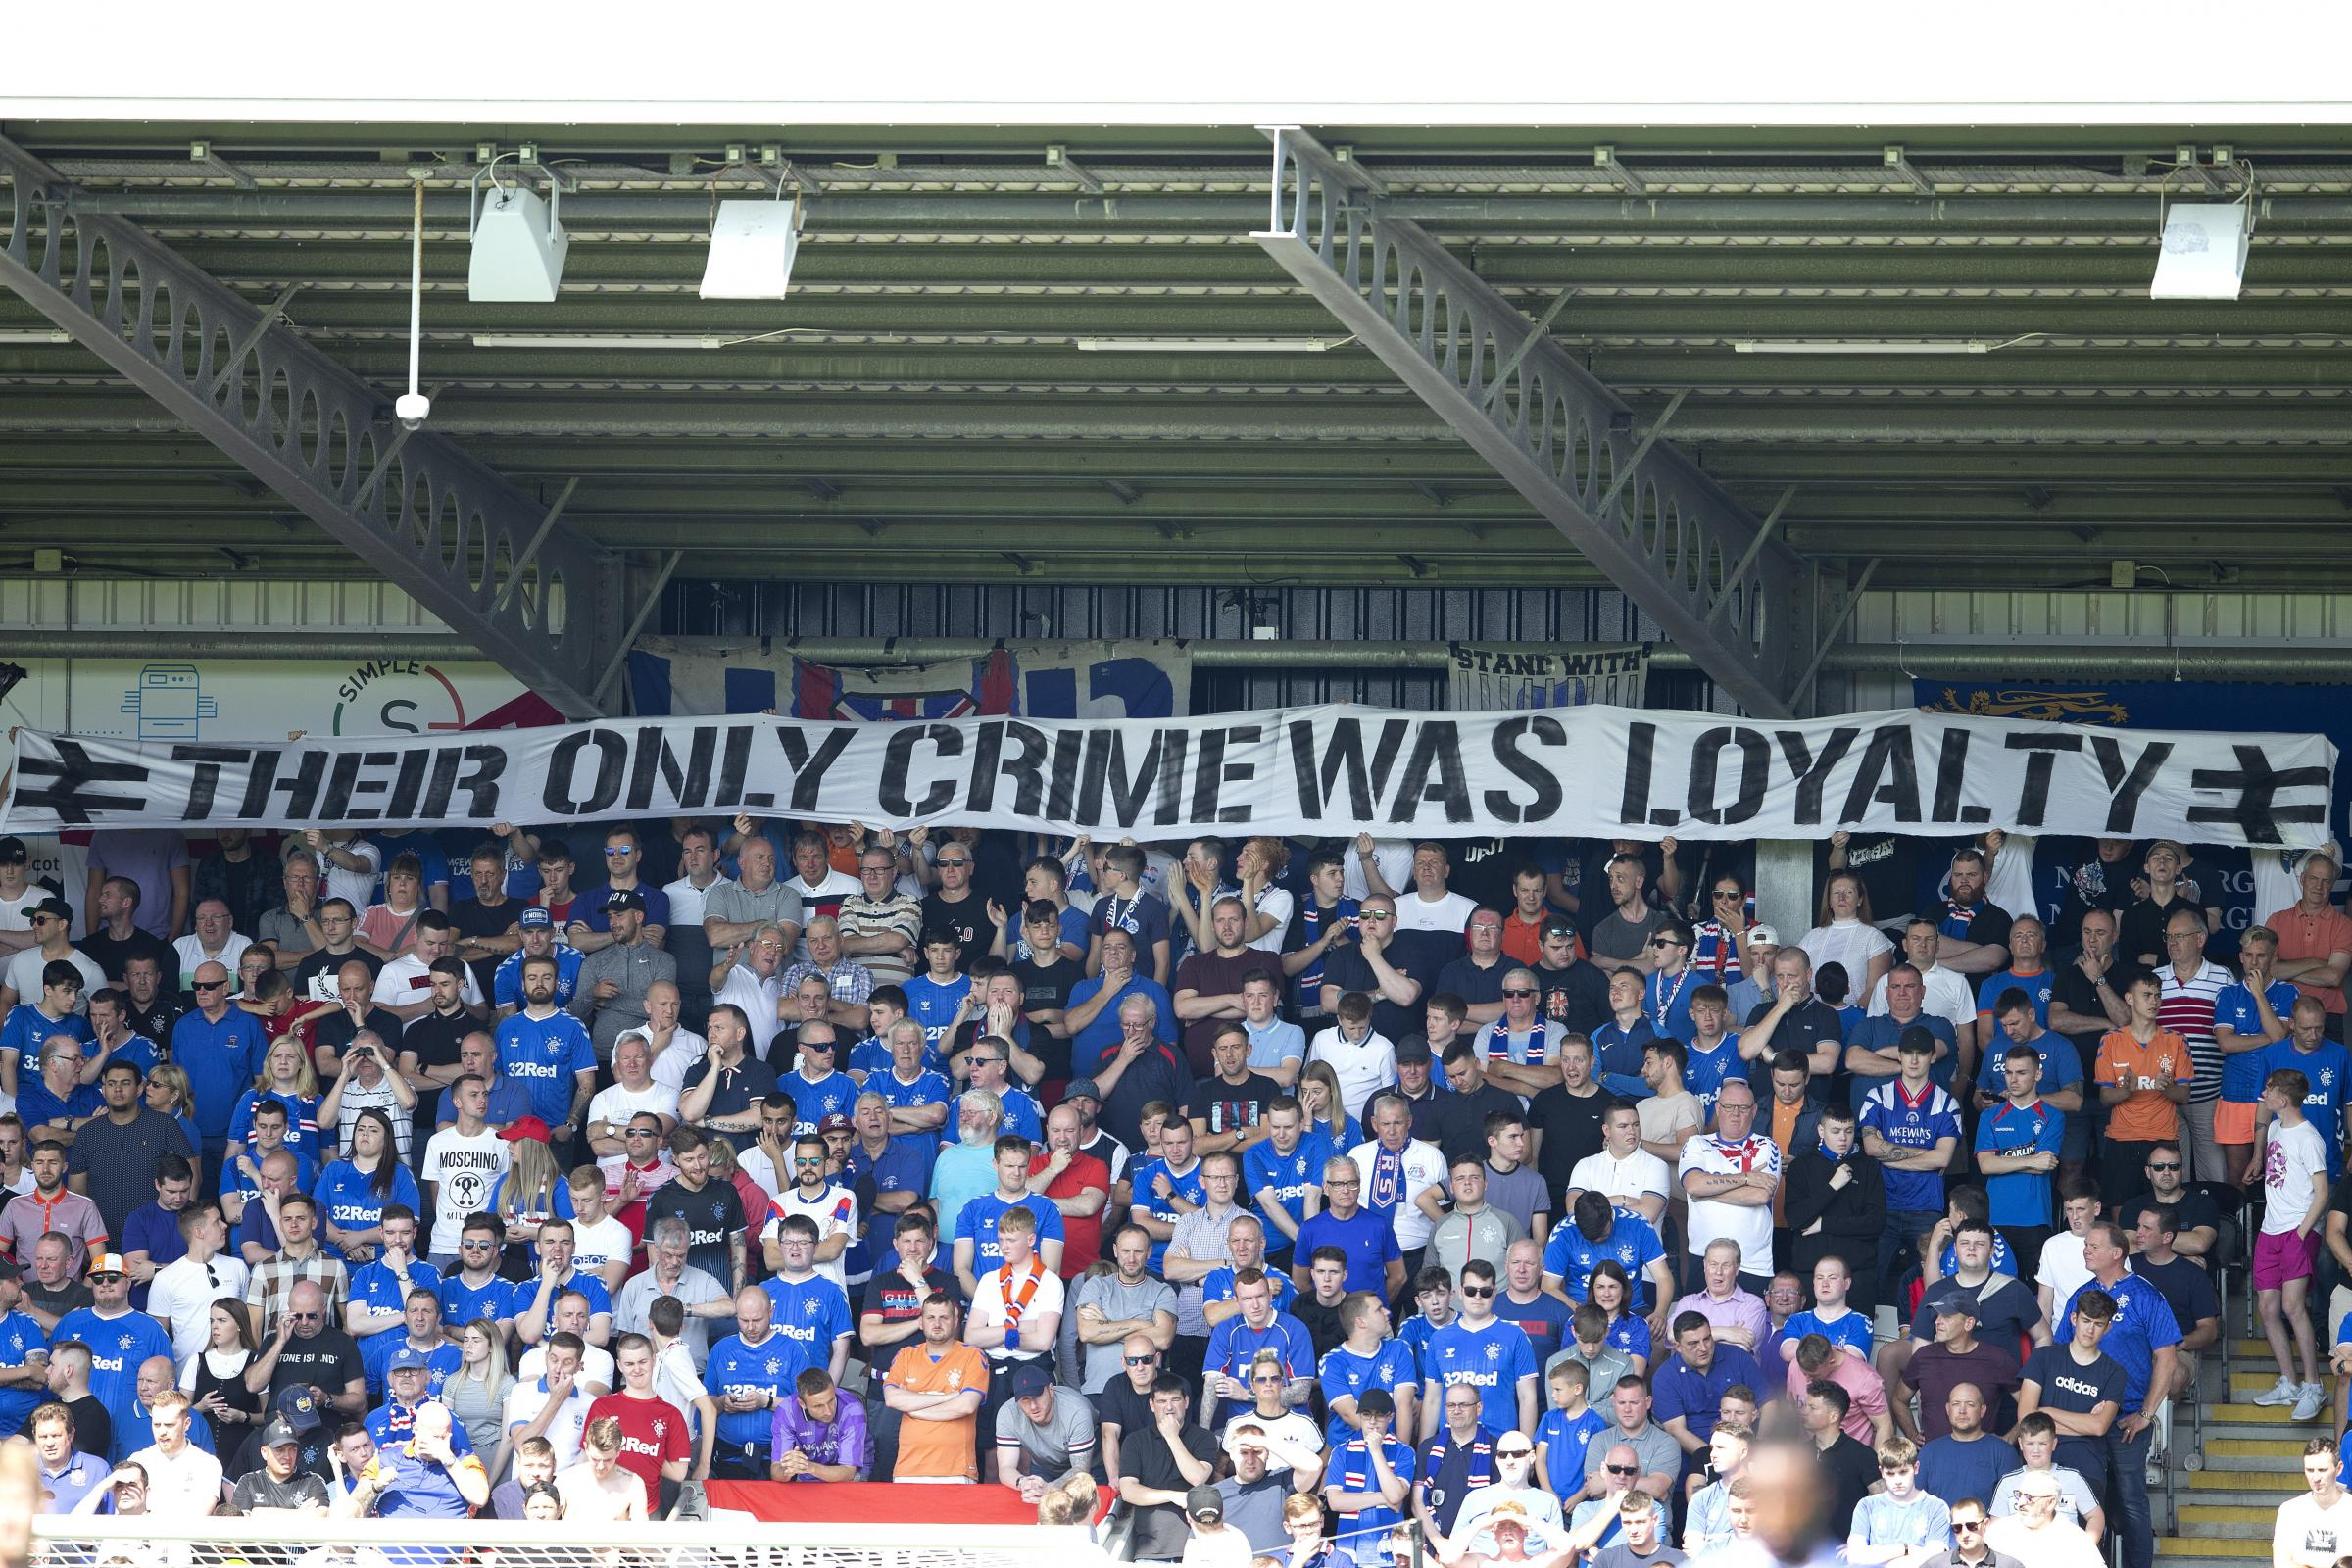 Union Bears accuse Rangers of 'actively facilitating the targeting of our group'